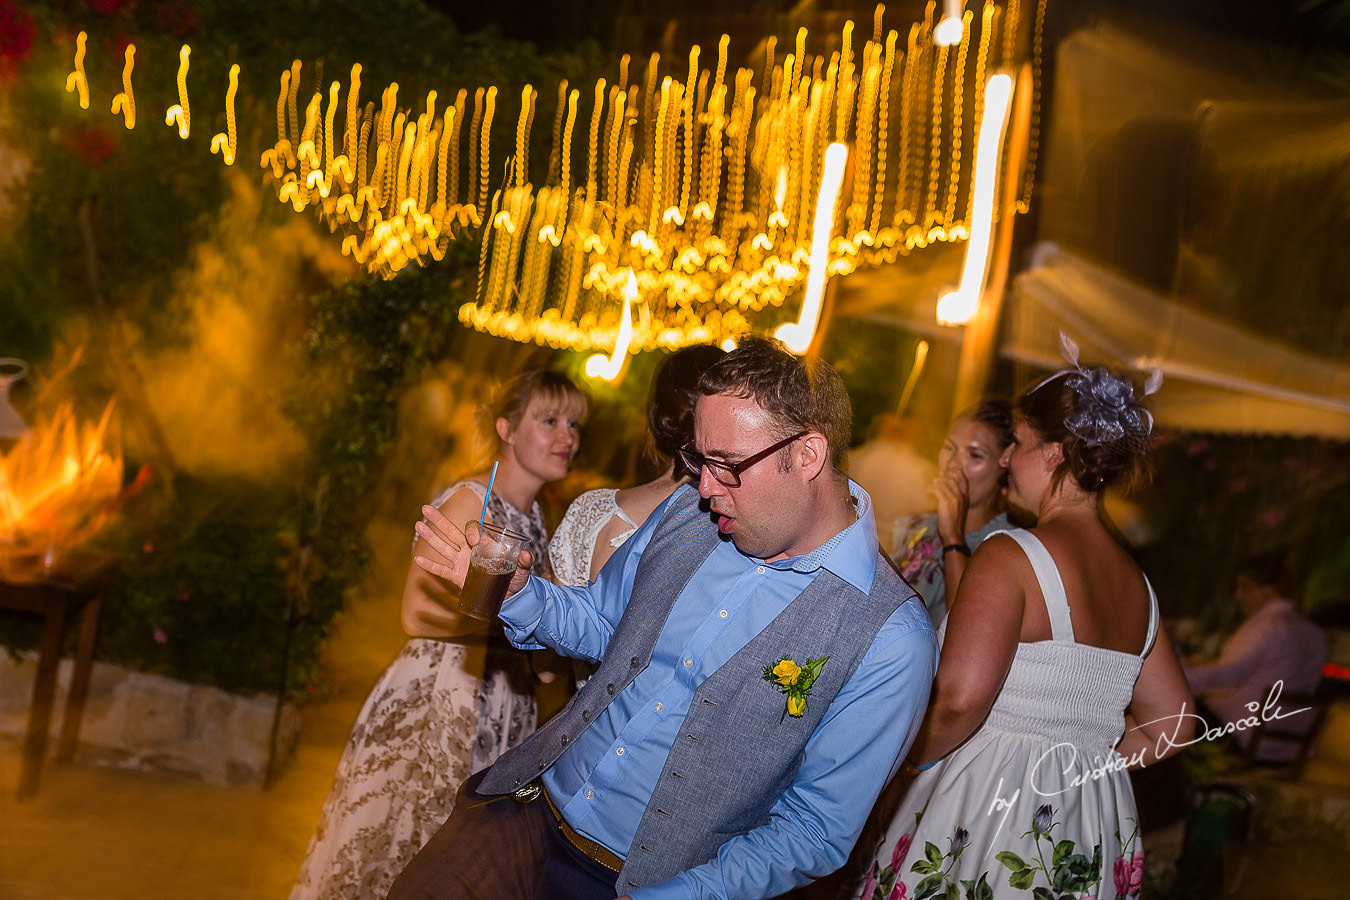 A beautiful wedding day at the Vasilias Nikoklis Inn in Paphos, captured by Cristian Dascalu. After Dinner Moments.